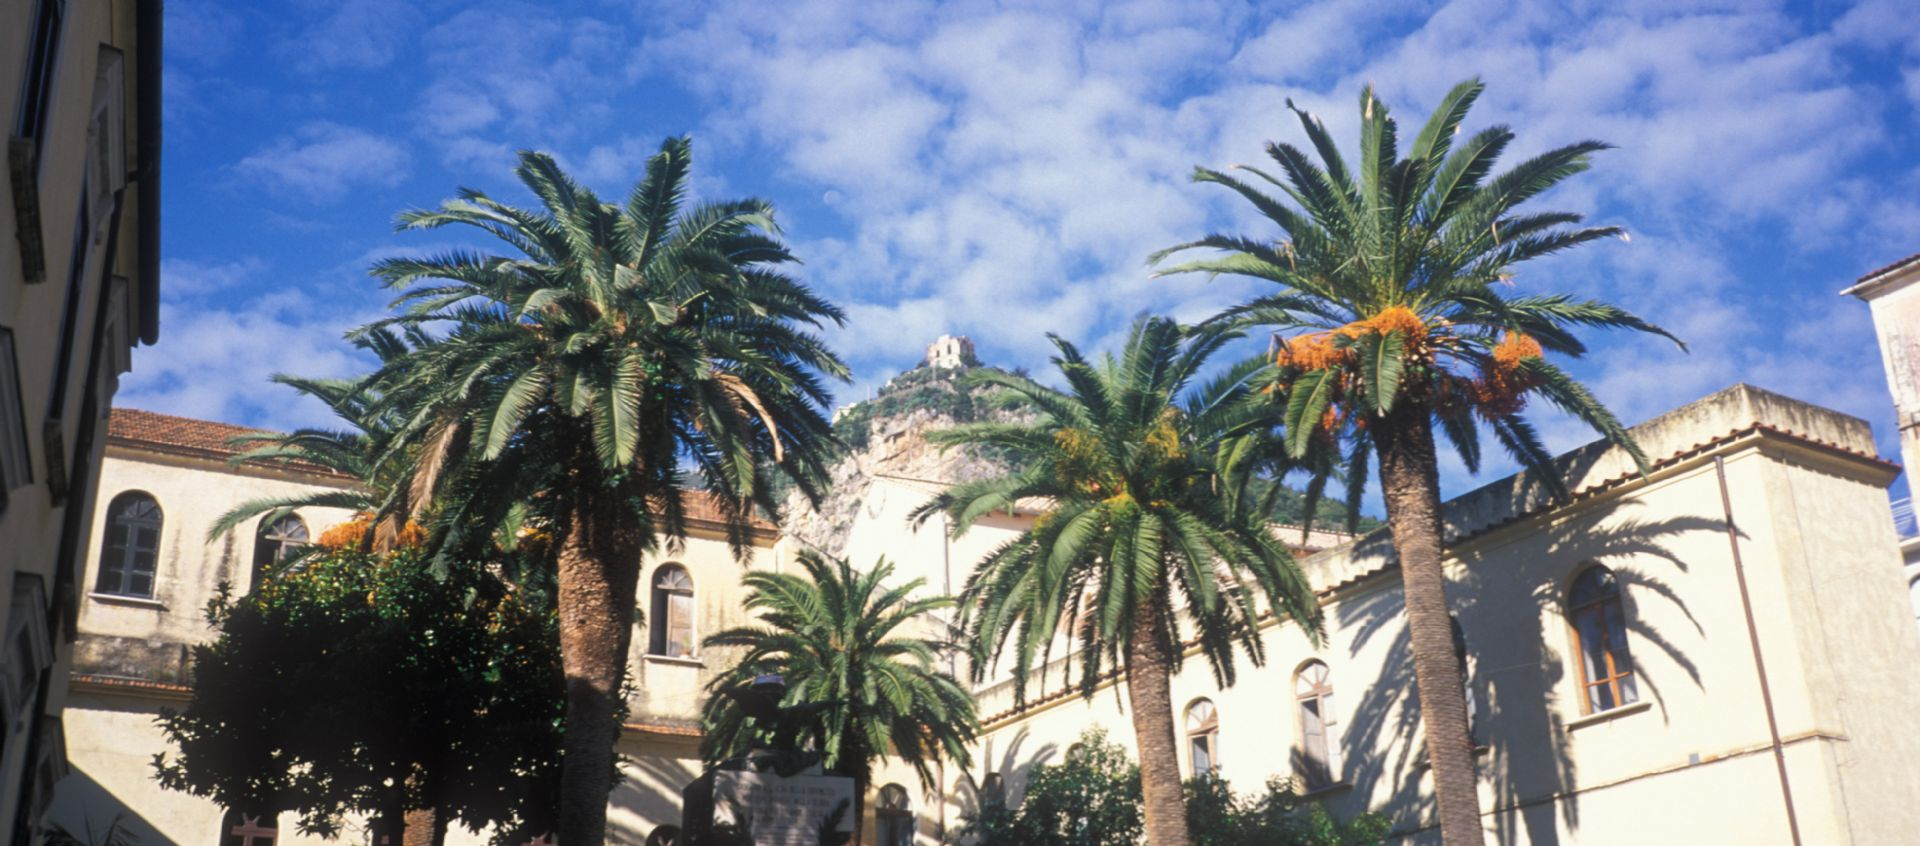 Palm Tree Piazza.jpg - Italy - Cilento and The Amalfi Coast - Guided Leisure Cycling Holiday - Italia Leisure and Family Cycling